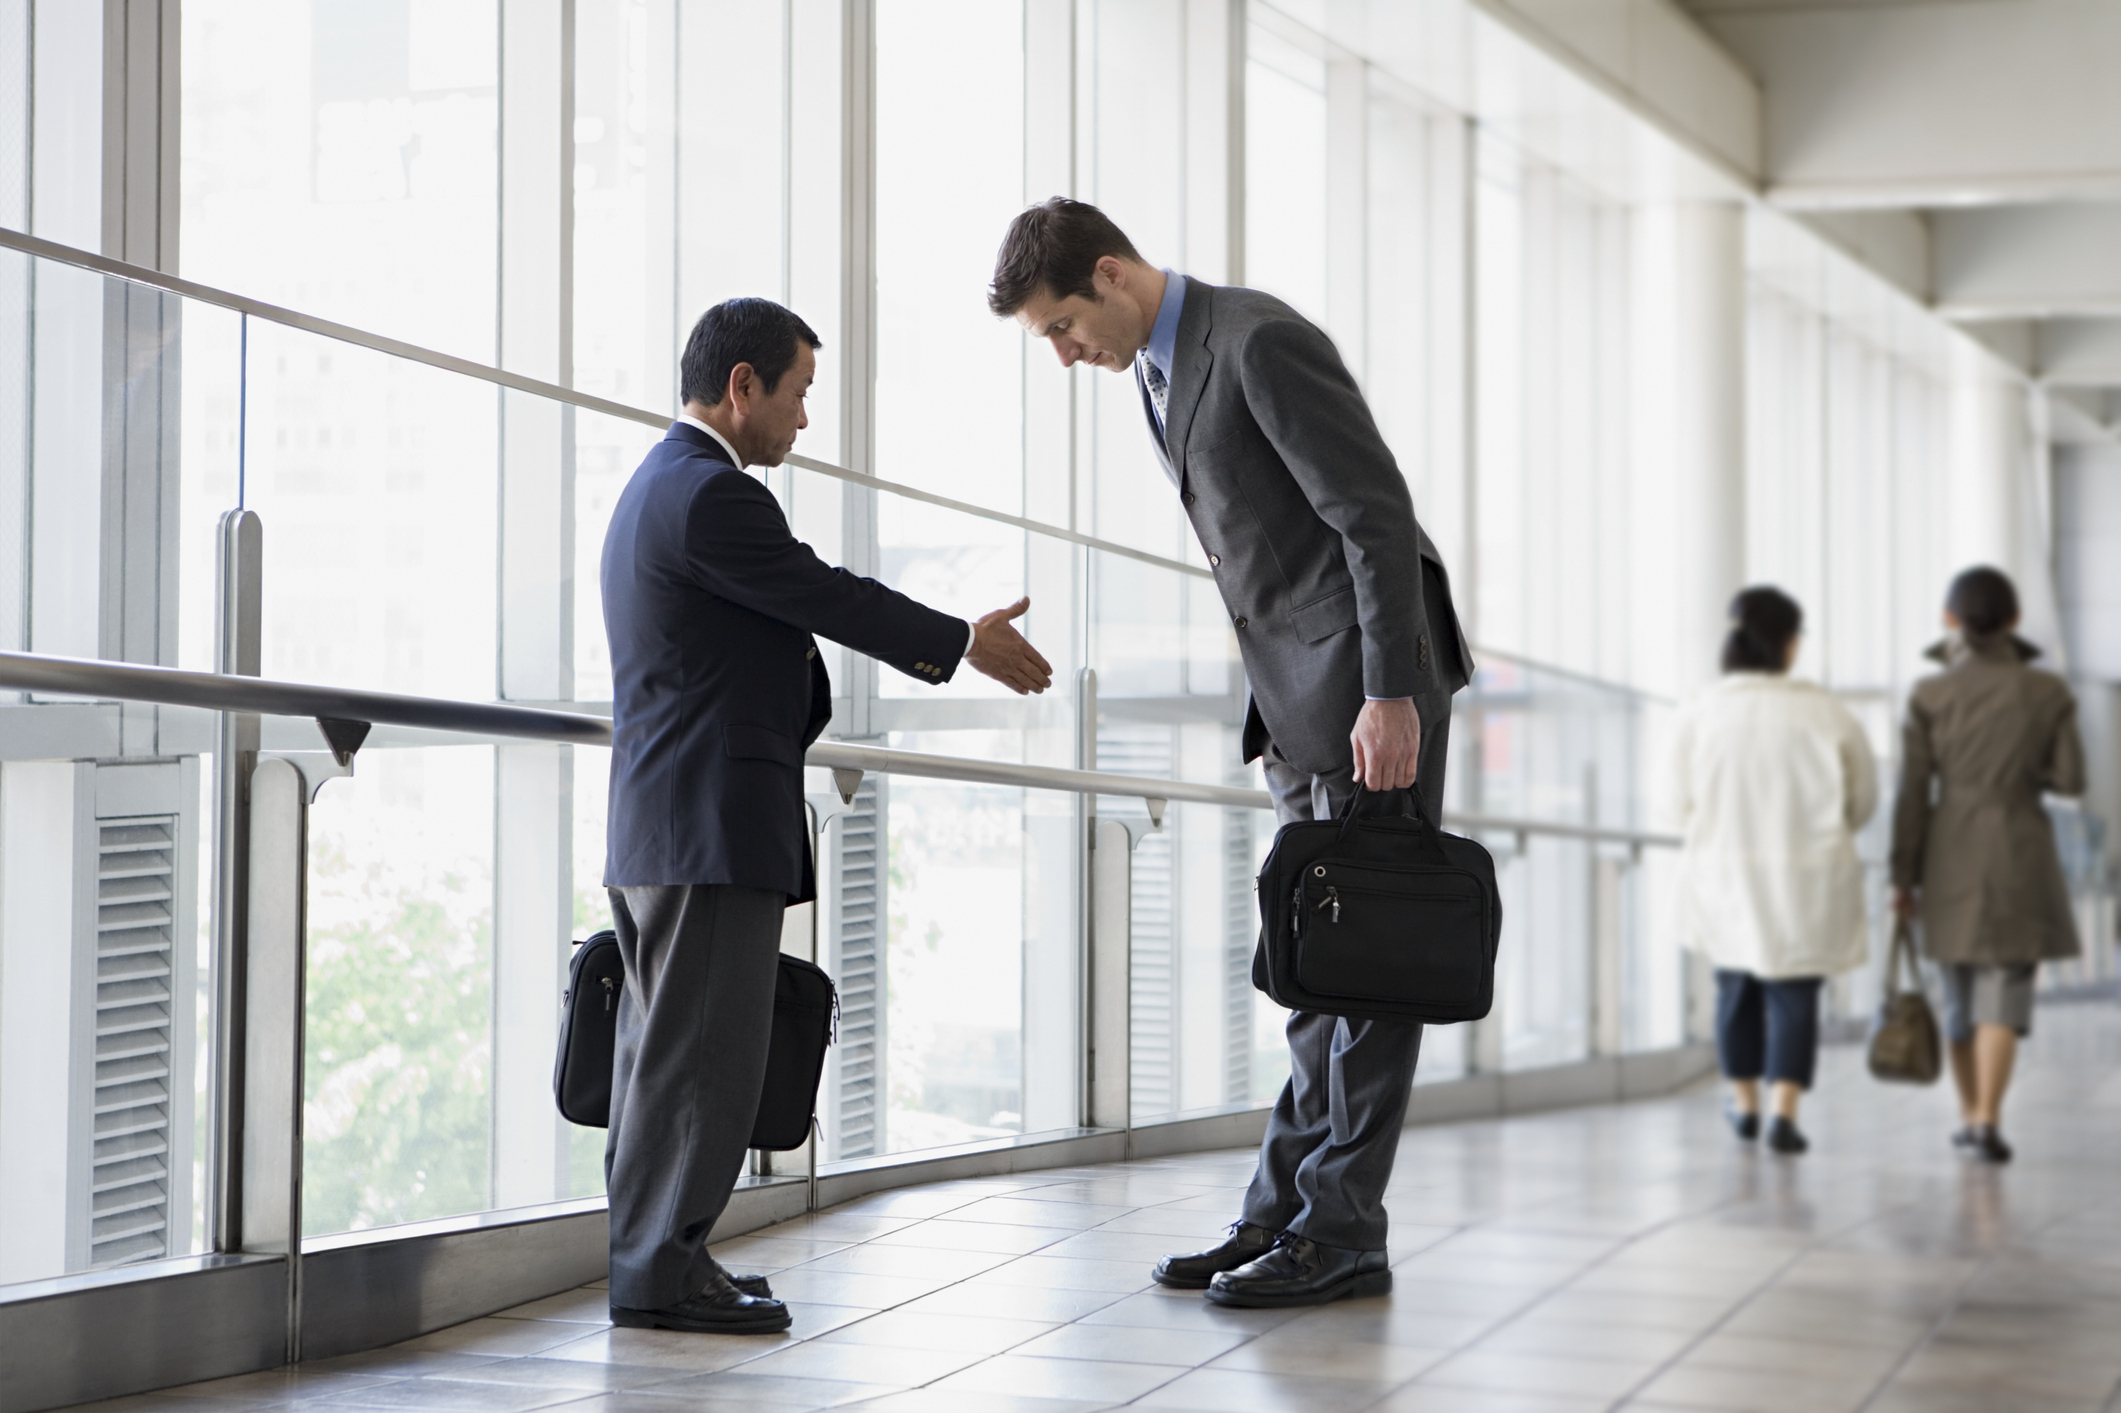 Bow Shake Hands Or Poke Someone In The Eye Japan Intercultural Consulting